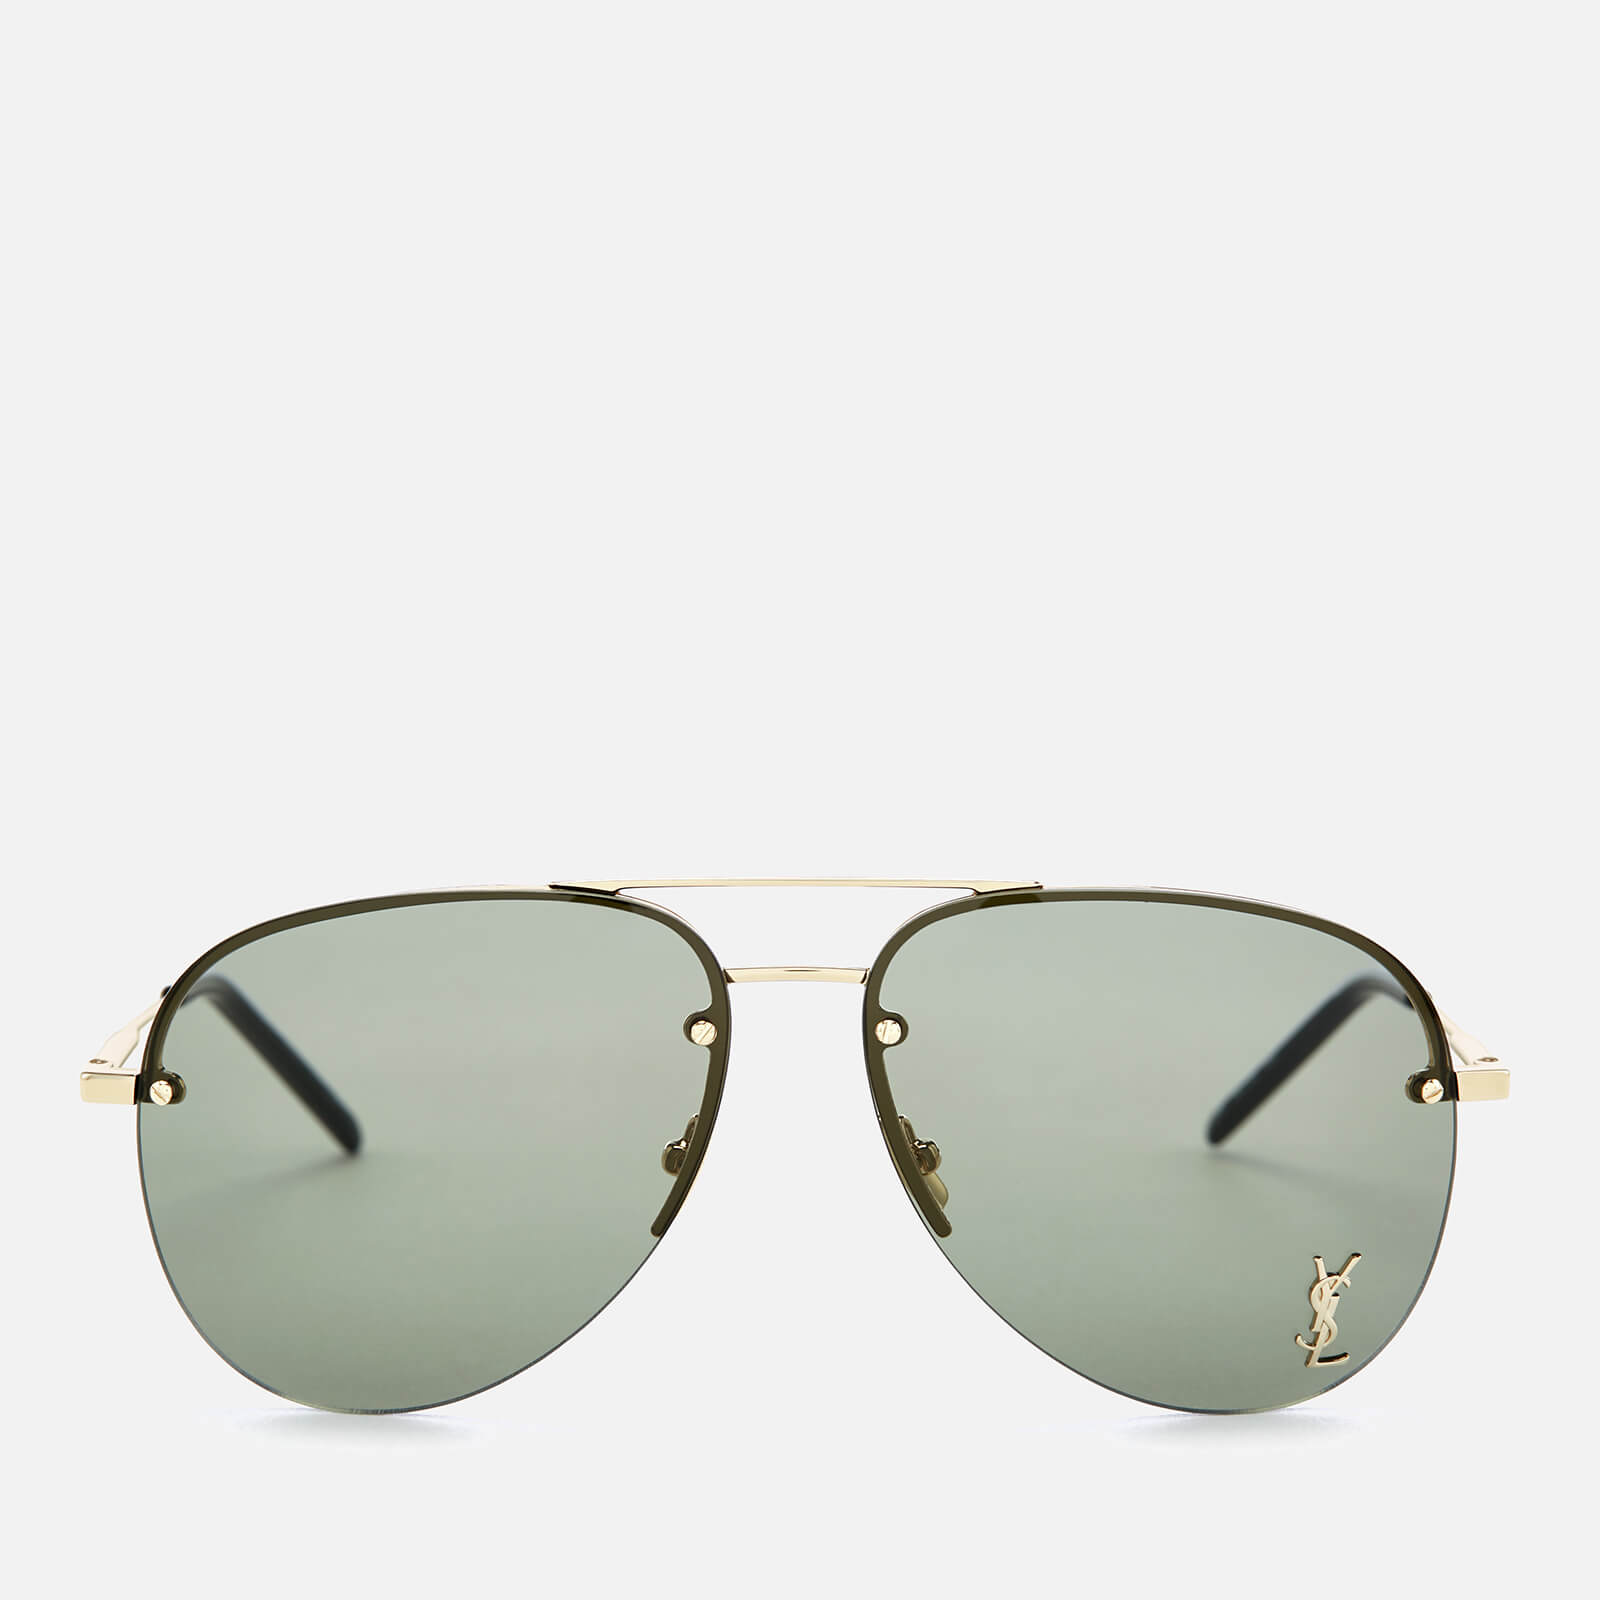 8d86014d74 Saint Laurent Metal Aviator Style Sunglasses - Gold - Free UK Delivery over  £50